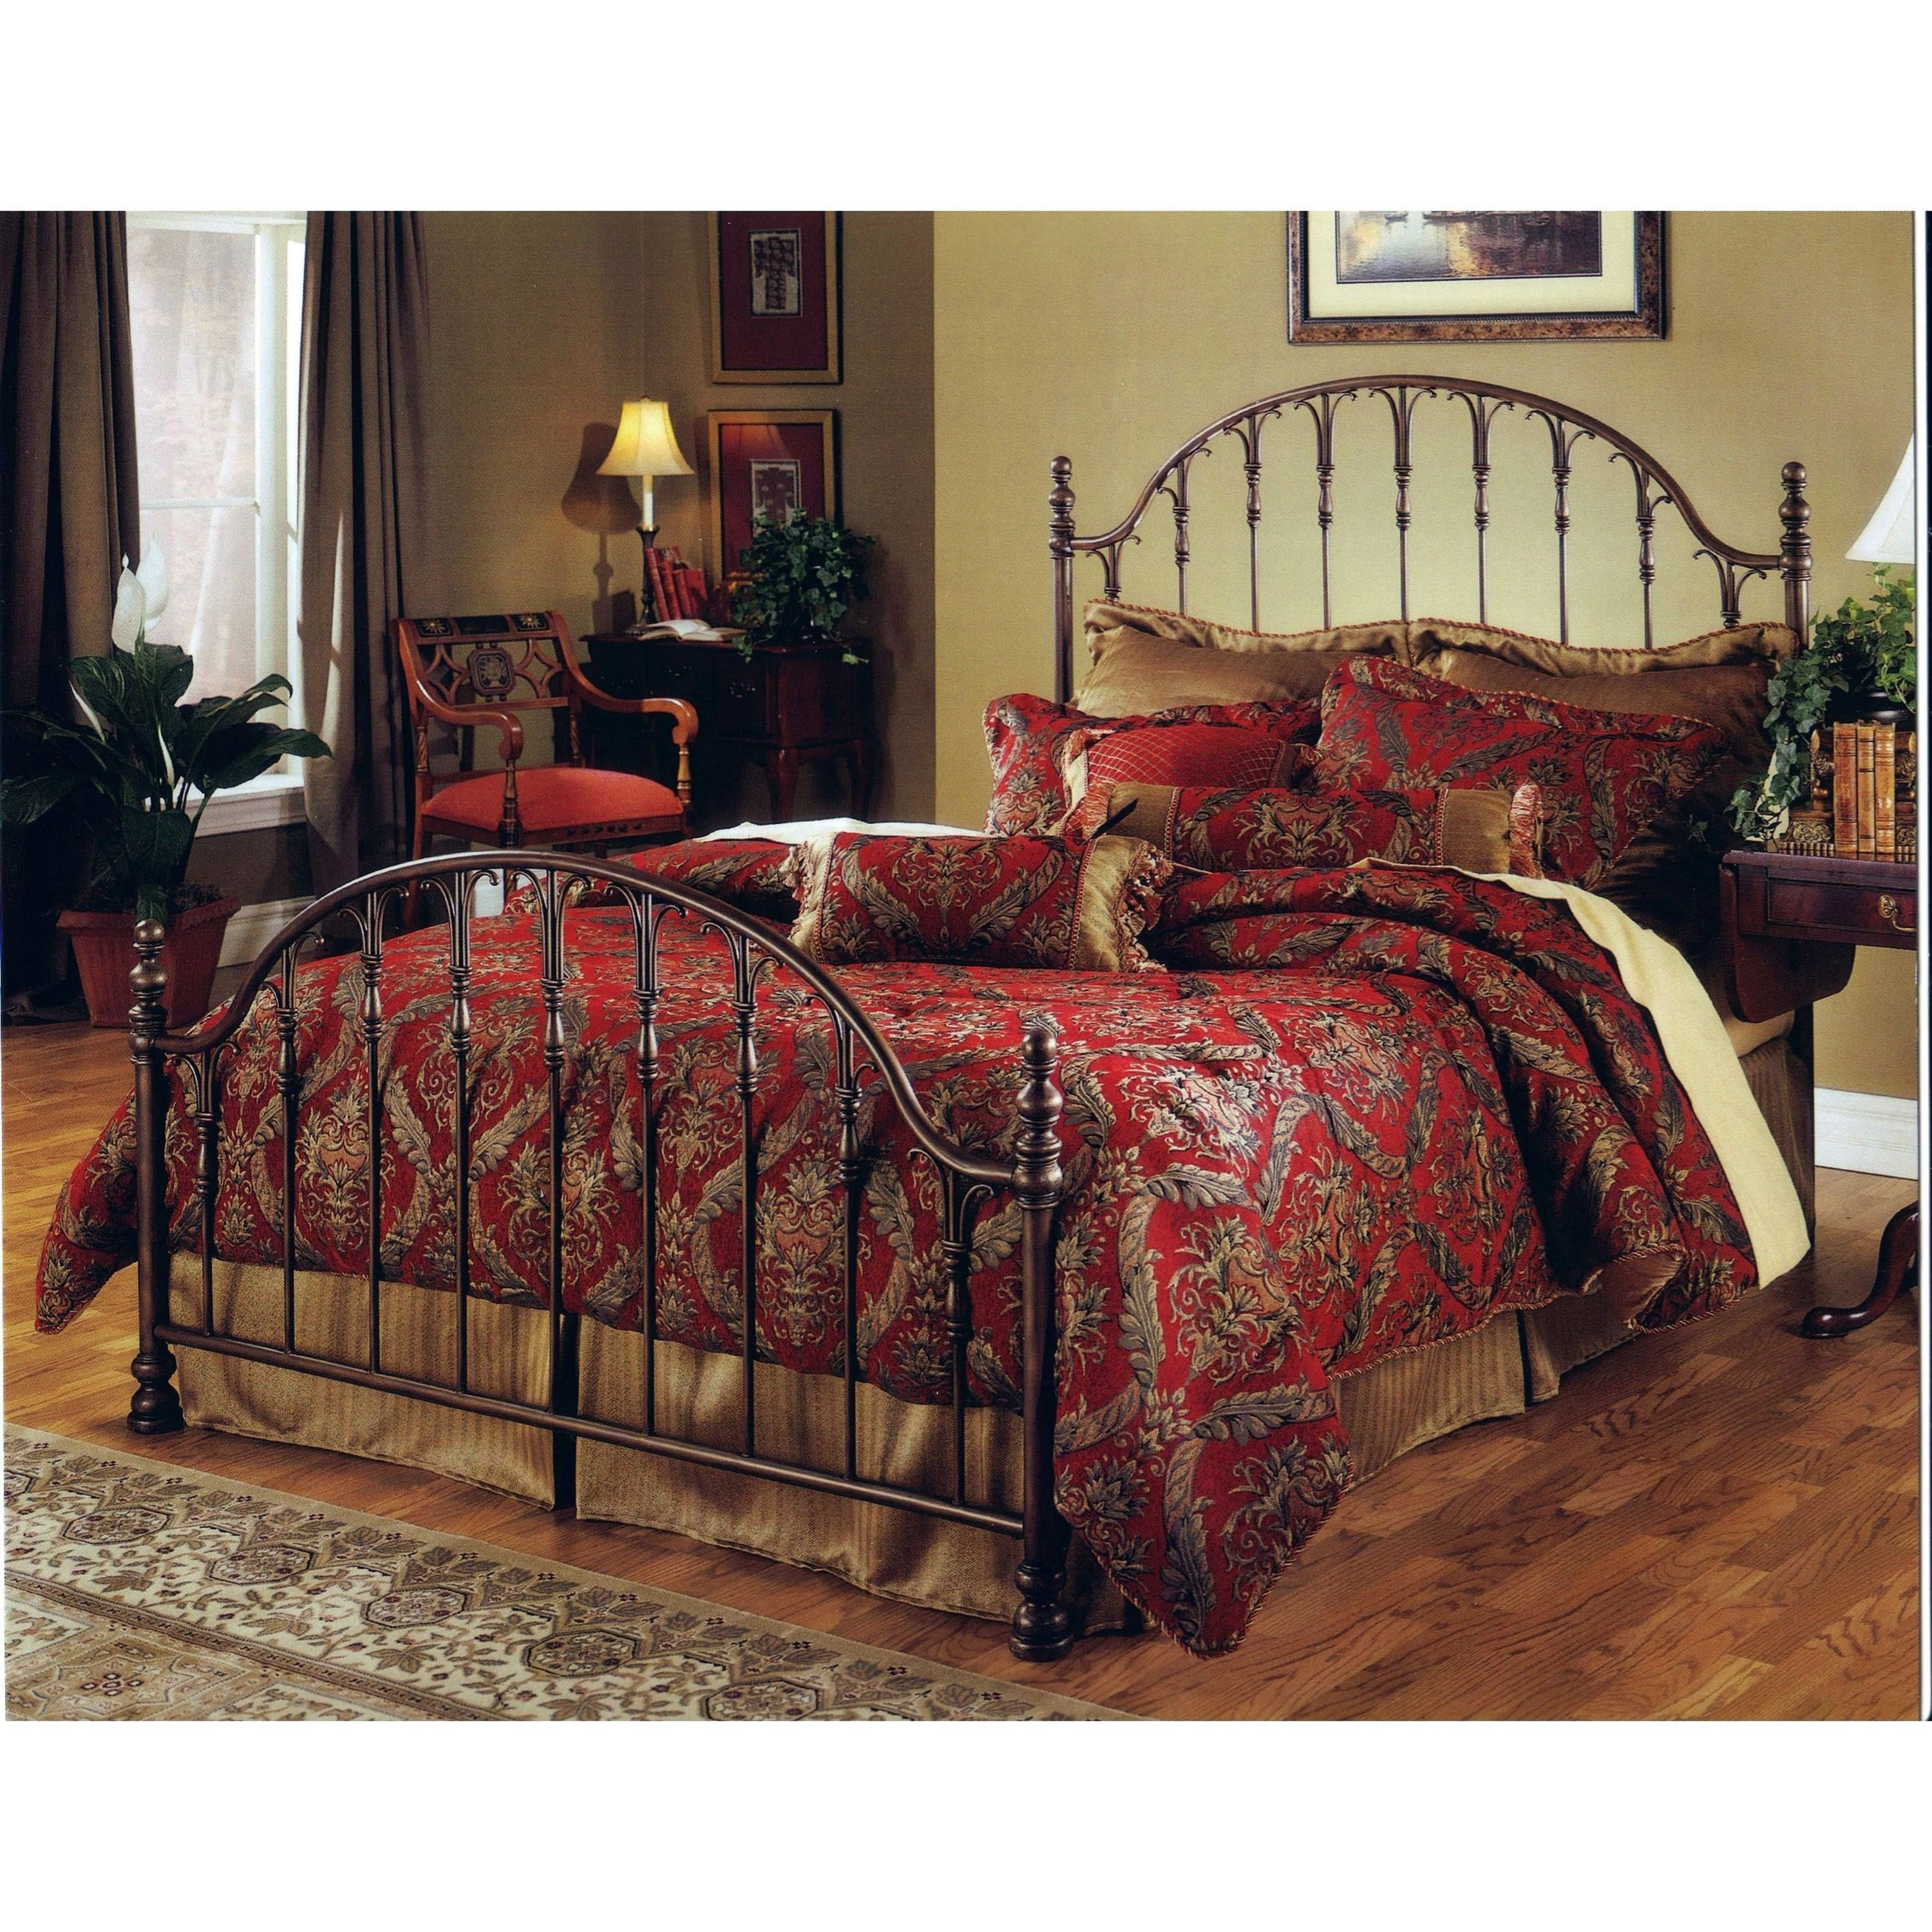 Hillsdale Metal Beds Full Tyler Bed Set - Item Number: 1239BF